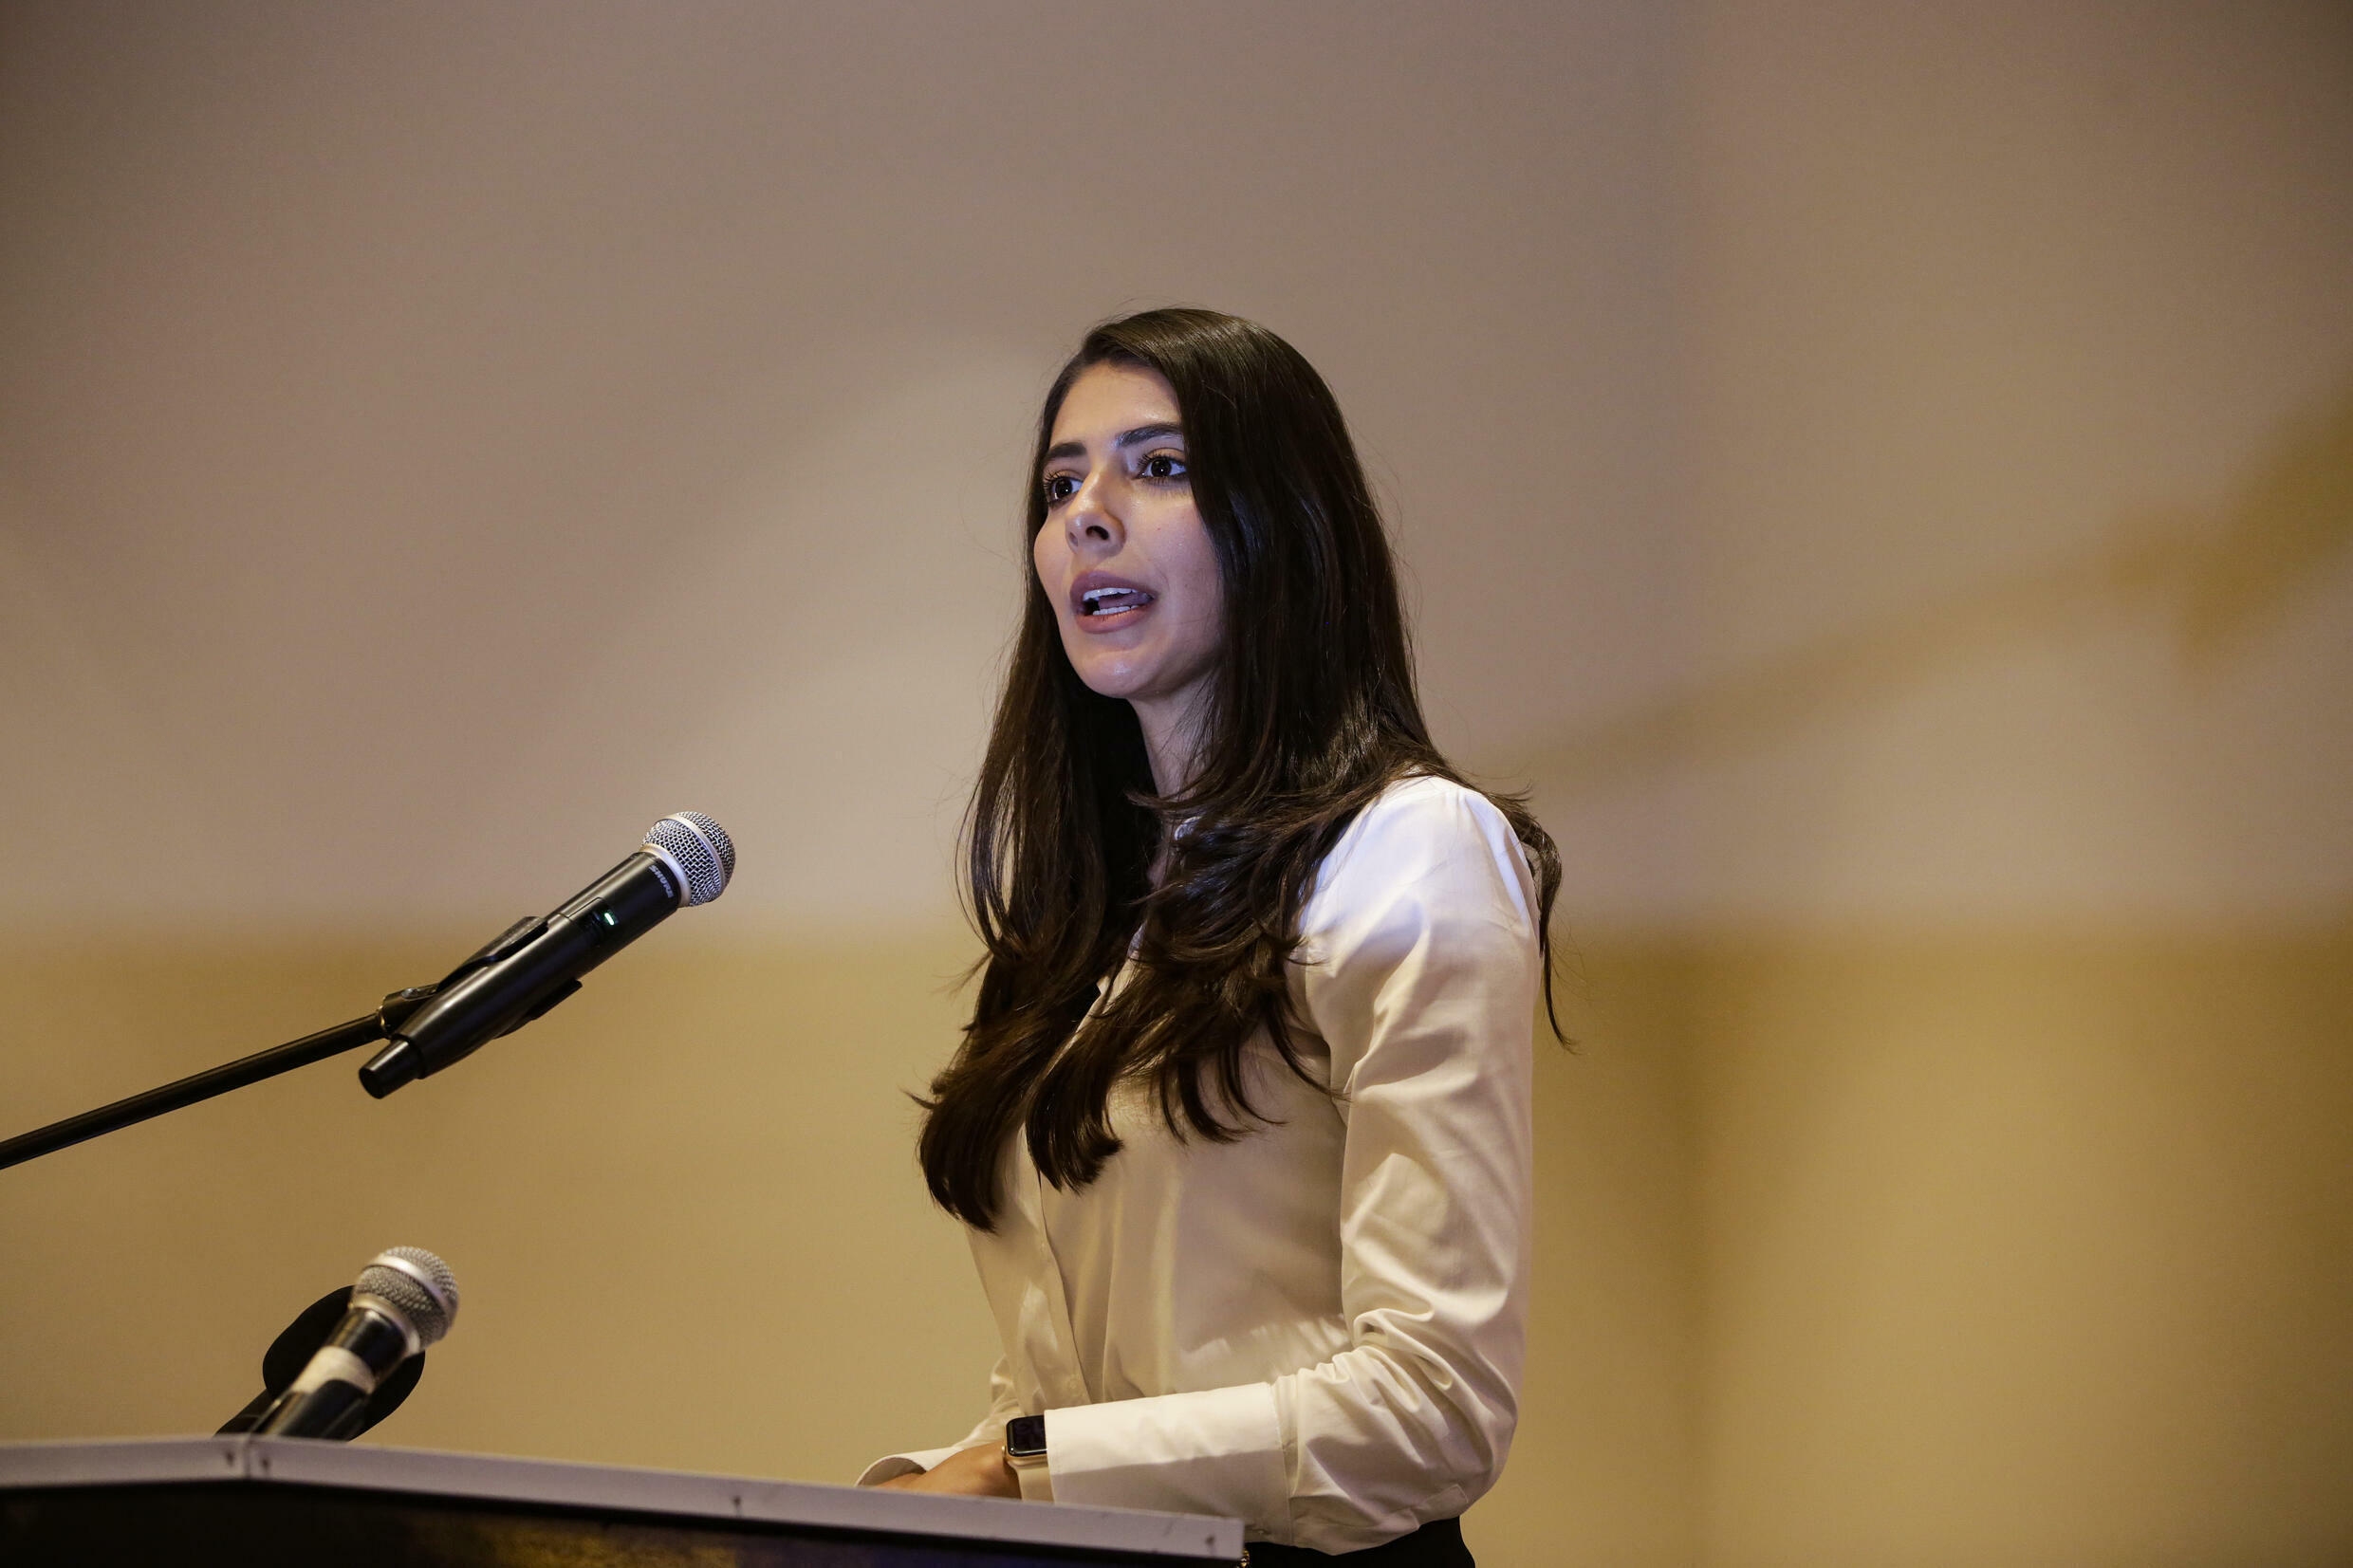 In this file photo taken on July 28, 2021 Berenice Quezada, Miss Nicaragua 2017 and vice-presidential candidate for the Alianza Ciudadana por la Libertad (ACXL) party, speaks during a rally with supporters in Managua